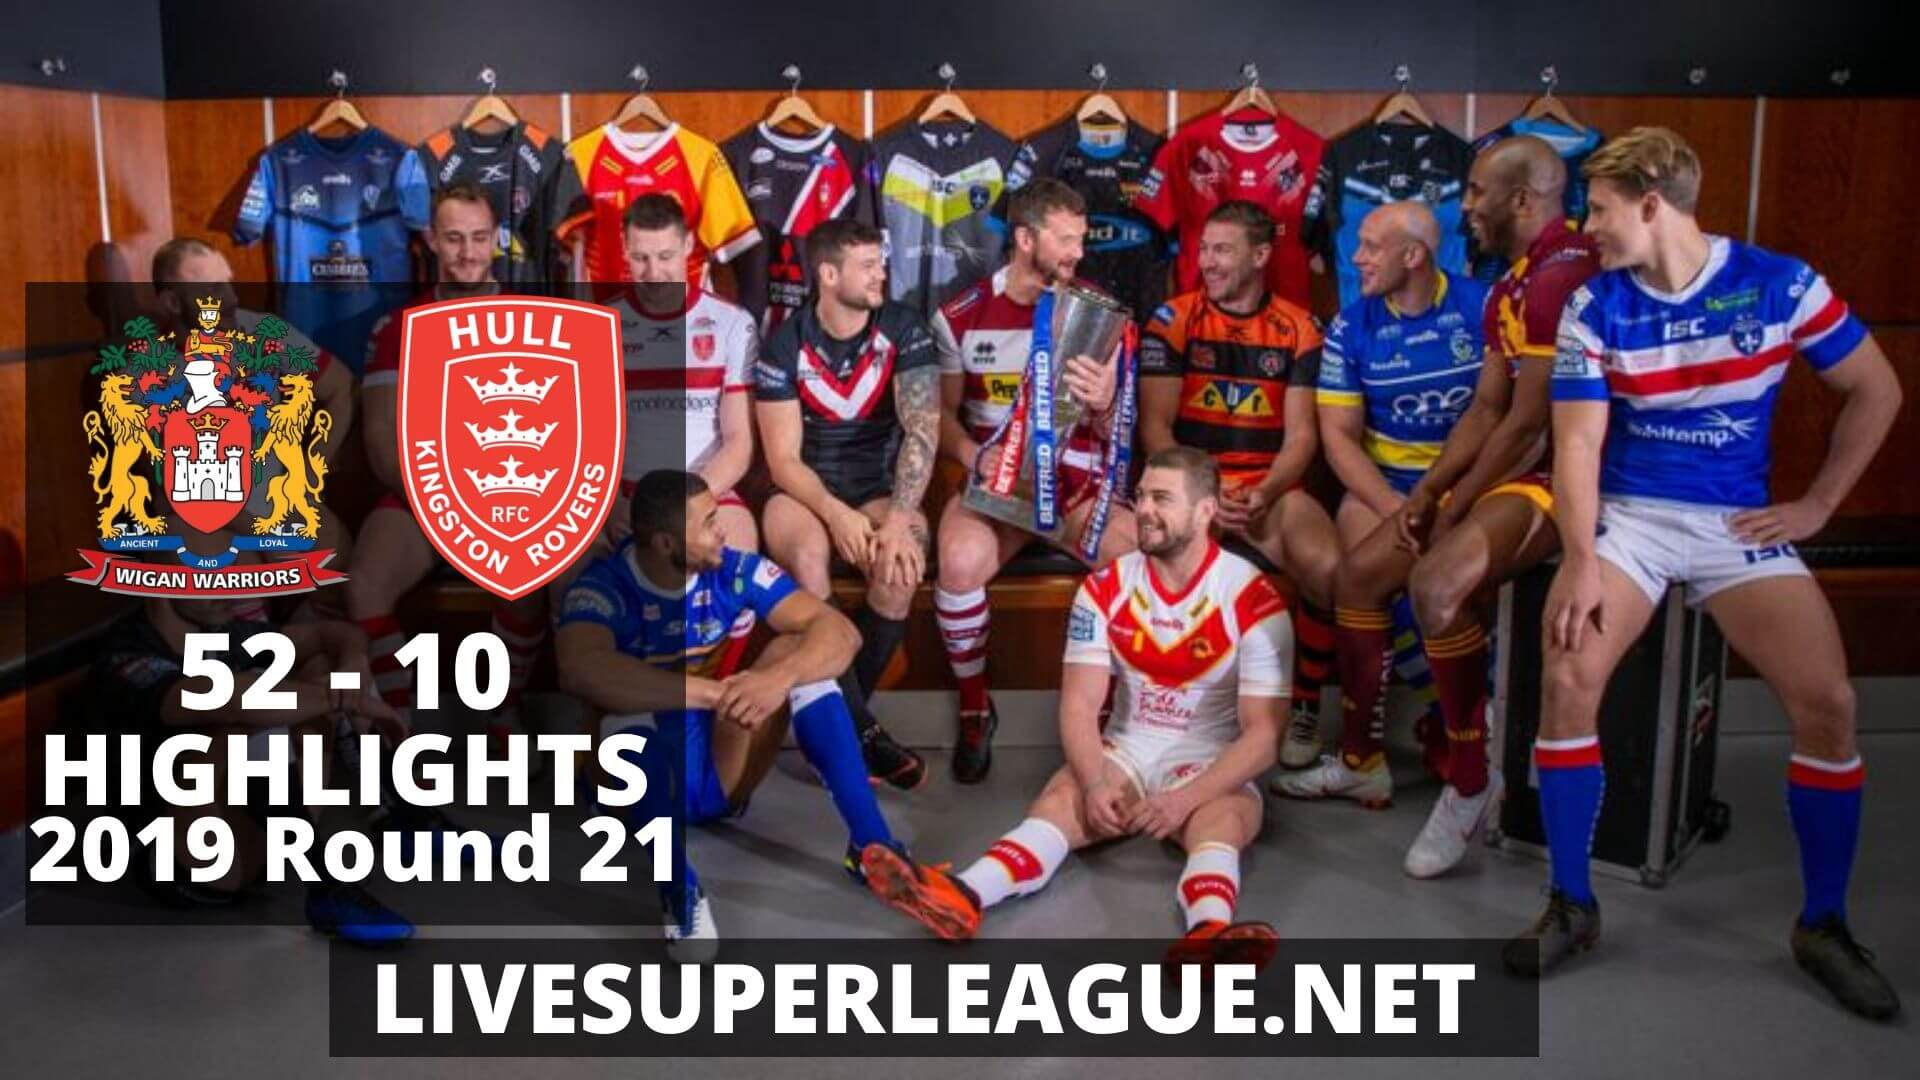 Wigan Warriors Vs Hull Kingston Rovers Highlights 2019 Round 21